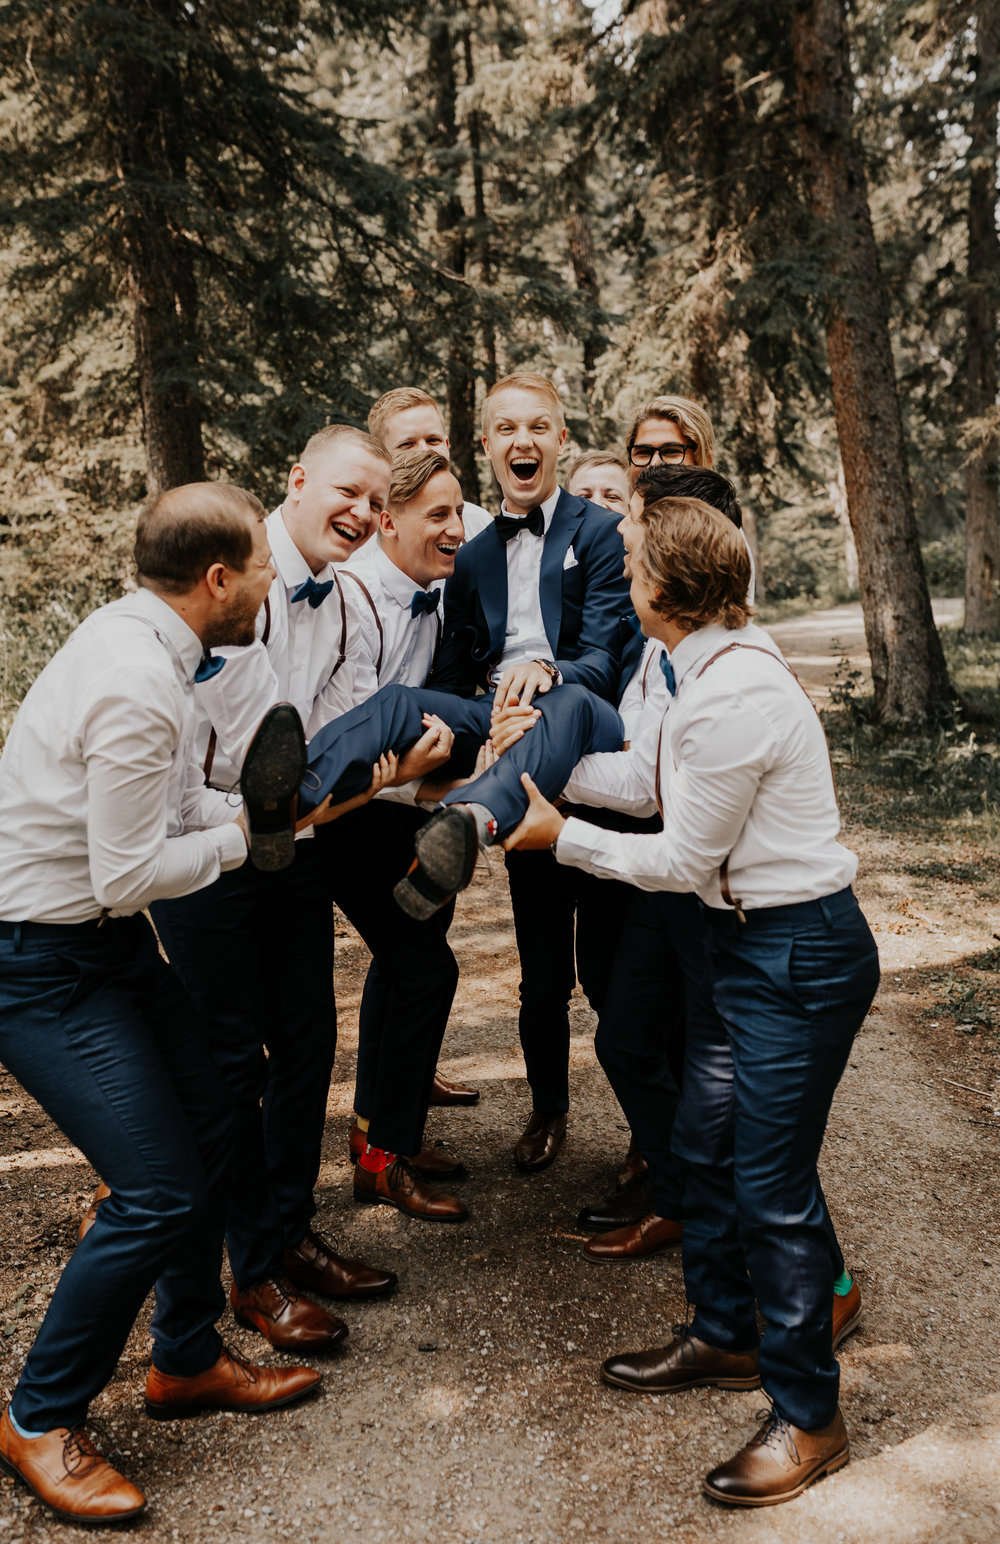 Groomsmen Wedding Photos l Banff Wedding l Calgary Wedding l Oregon Wedding Photographer l Katy Rose Photo-23.jpg